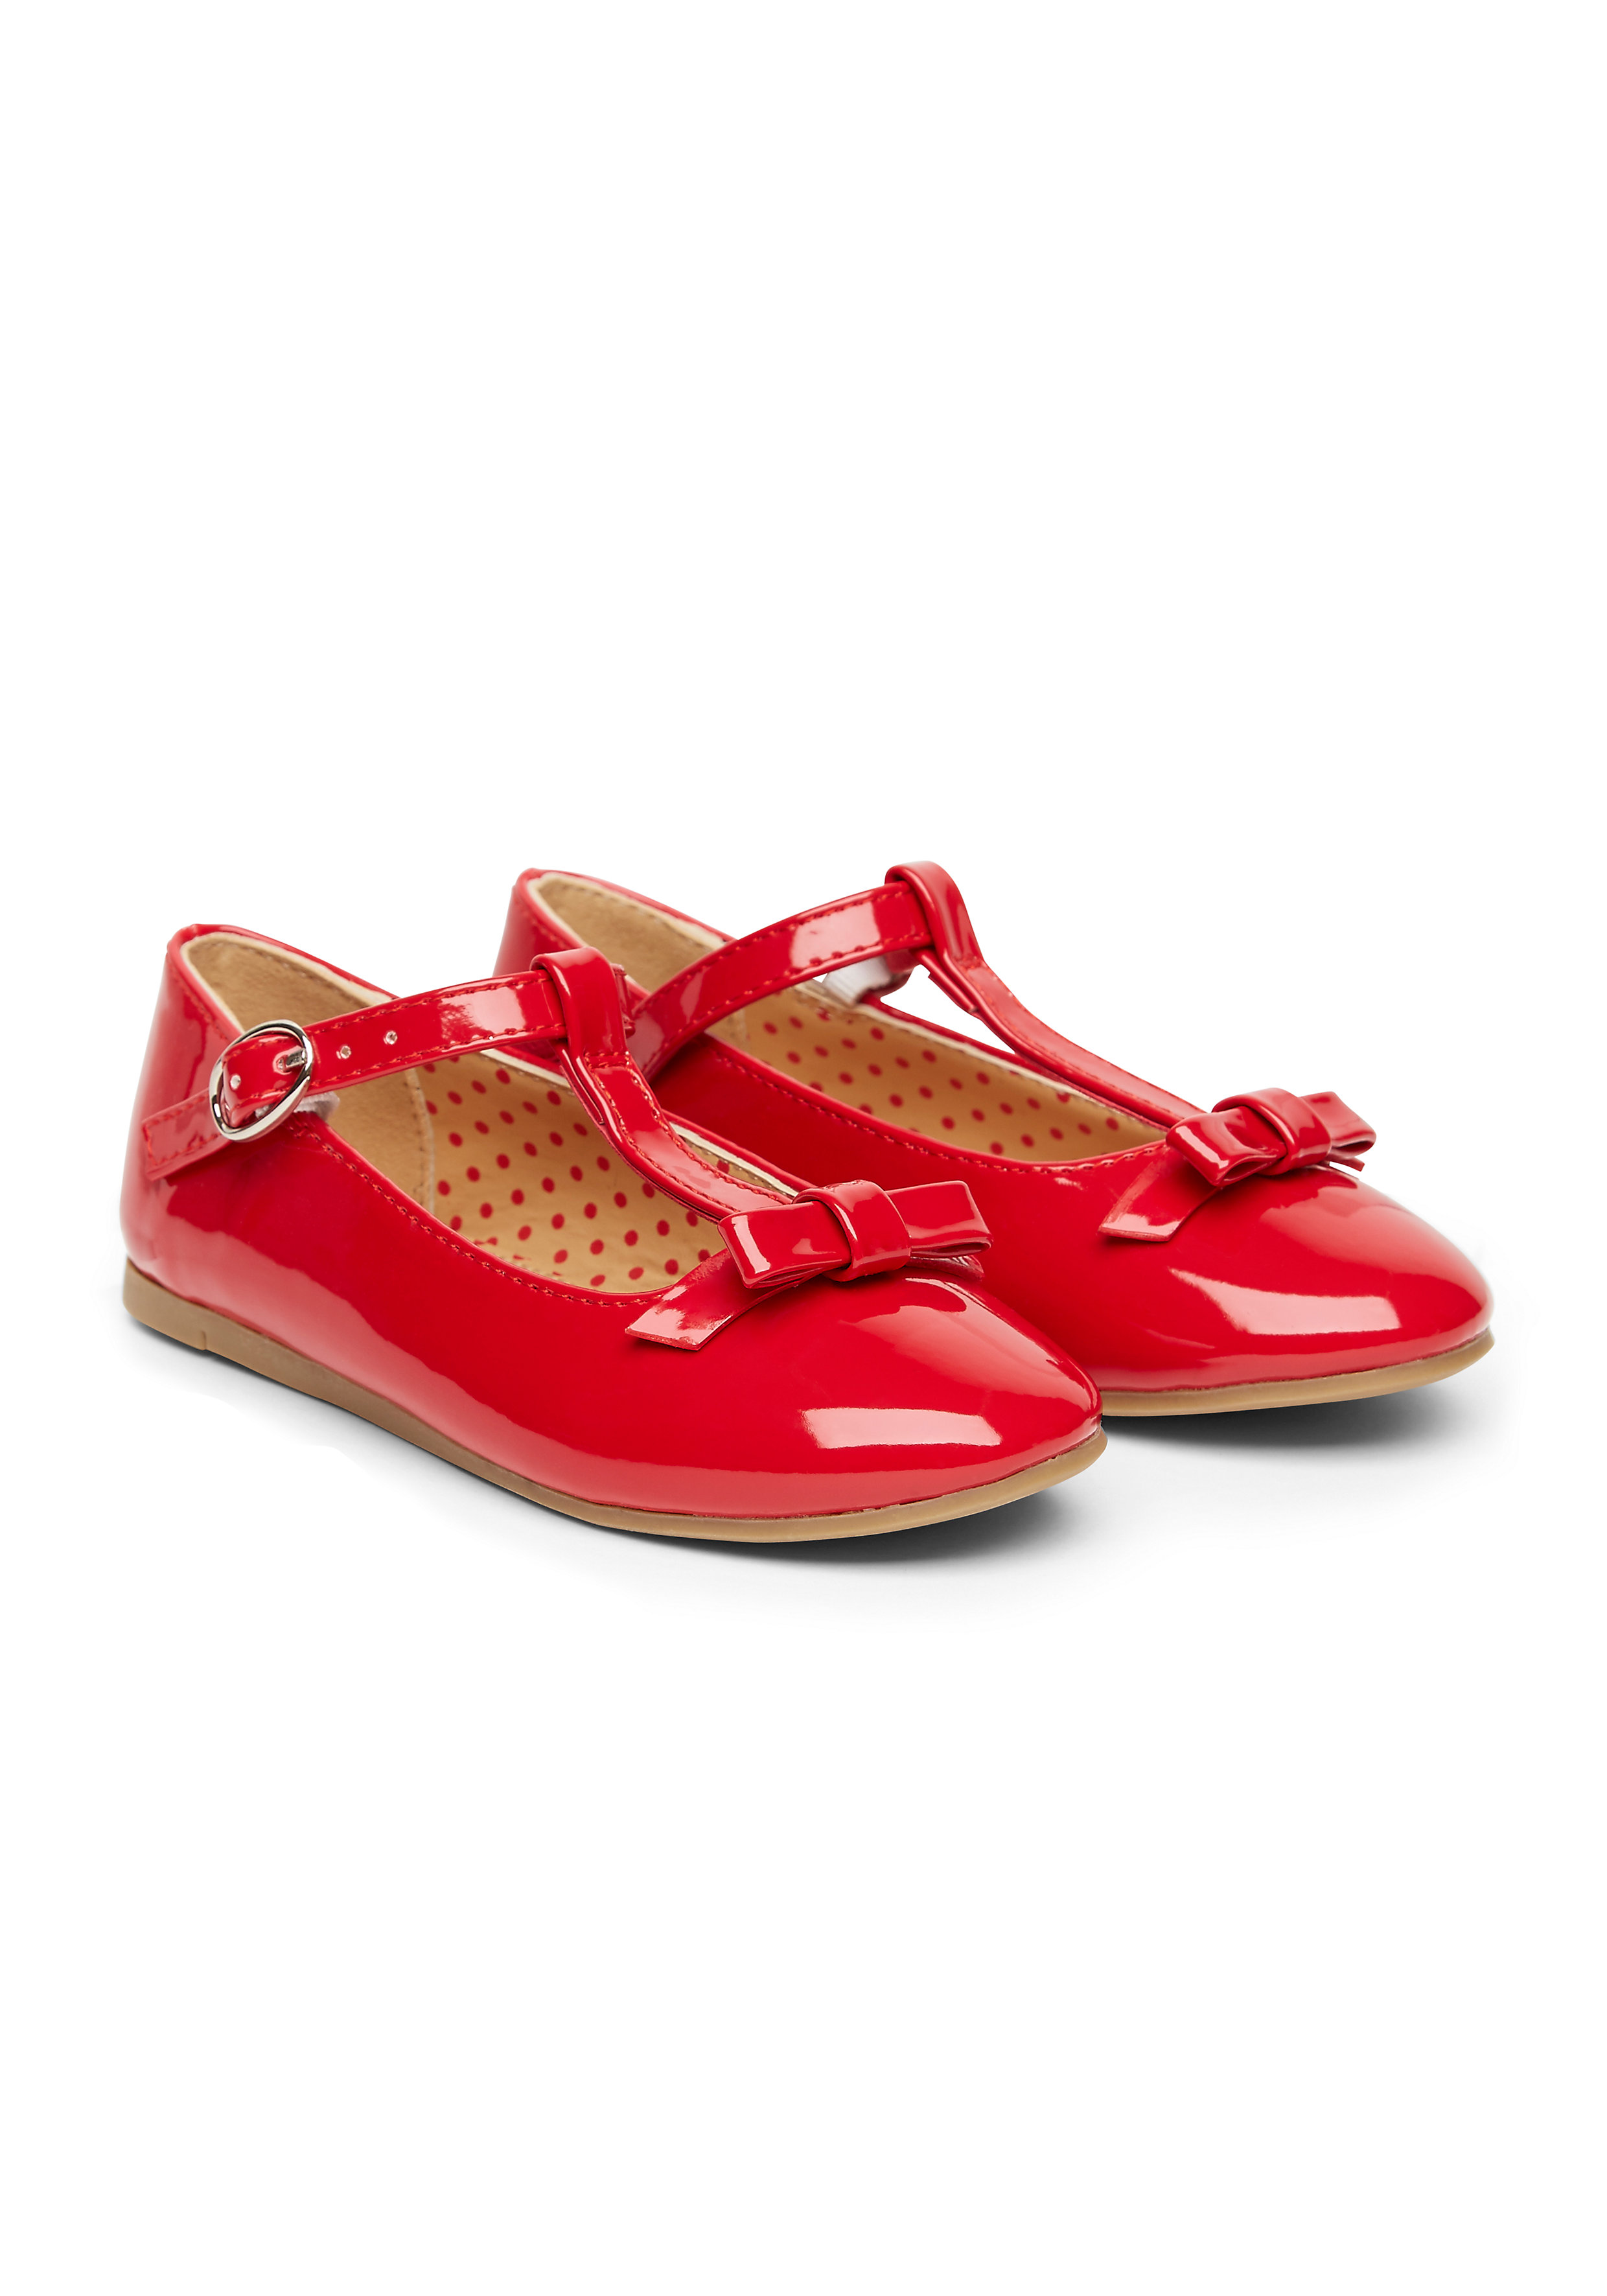 Mothercare | Girls T Bar Shoes - Red